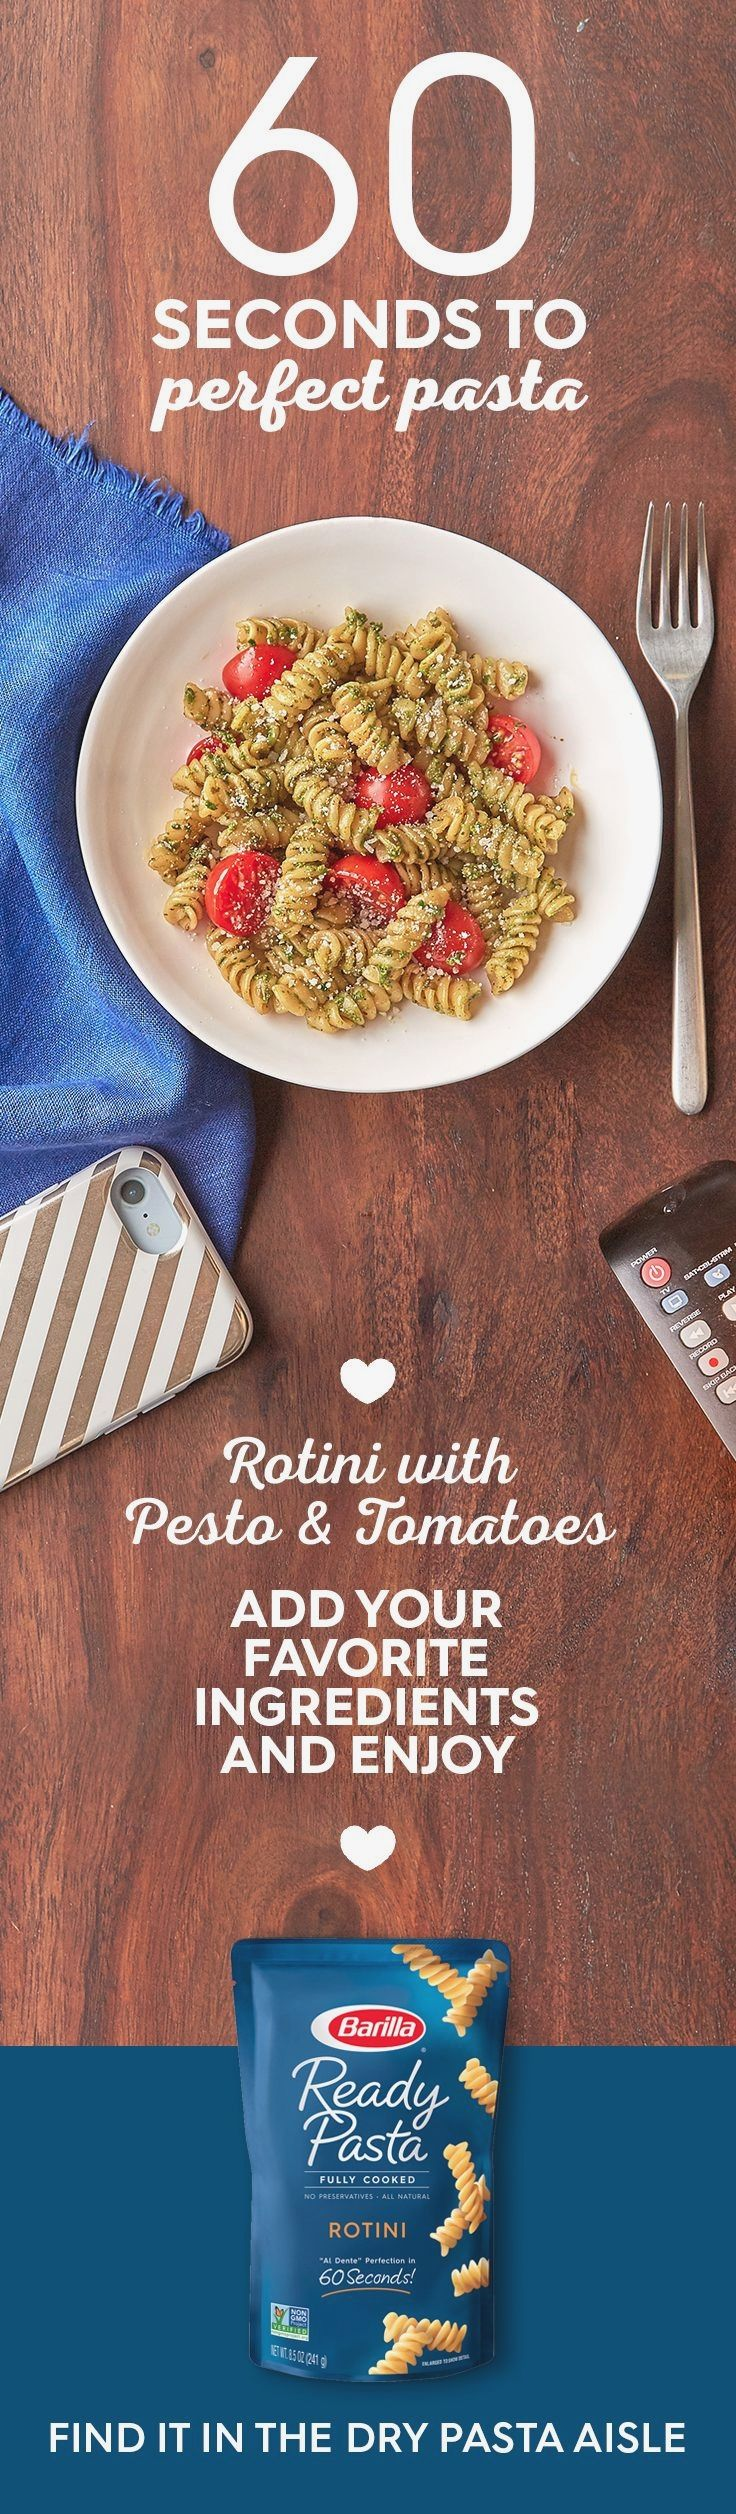 Looking for a quick meal that you can prep during your next commercial break? Save this recipe for an easy #pasta dish, made with tasty pesto and fresh tomatoes. #ReadyPasta #Barilla  Colombia Recipes  सूचना के लिए हमारी साइट पर पहुंचें   https://storelatina.com/colombia/recipes  #kolon